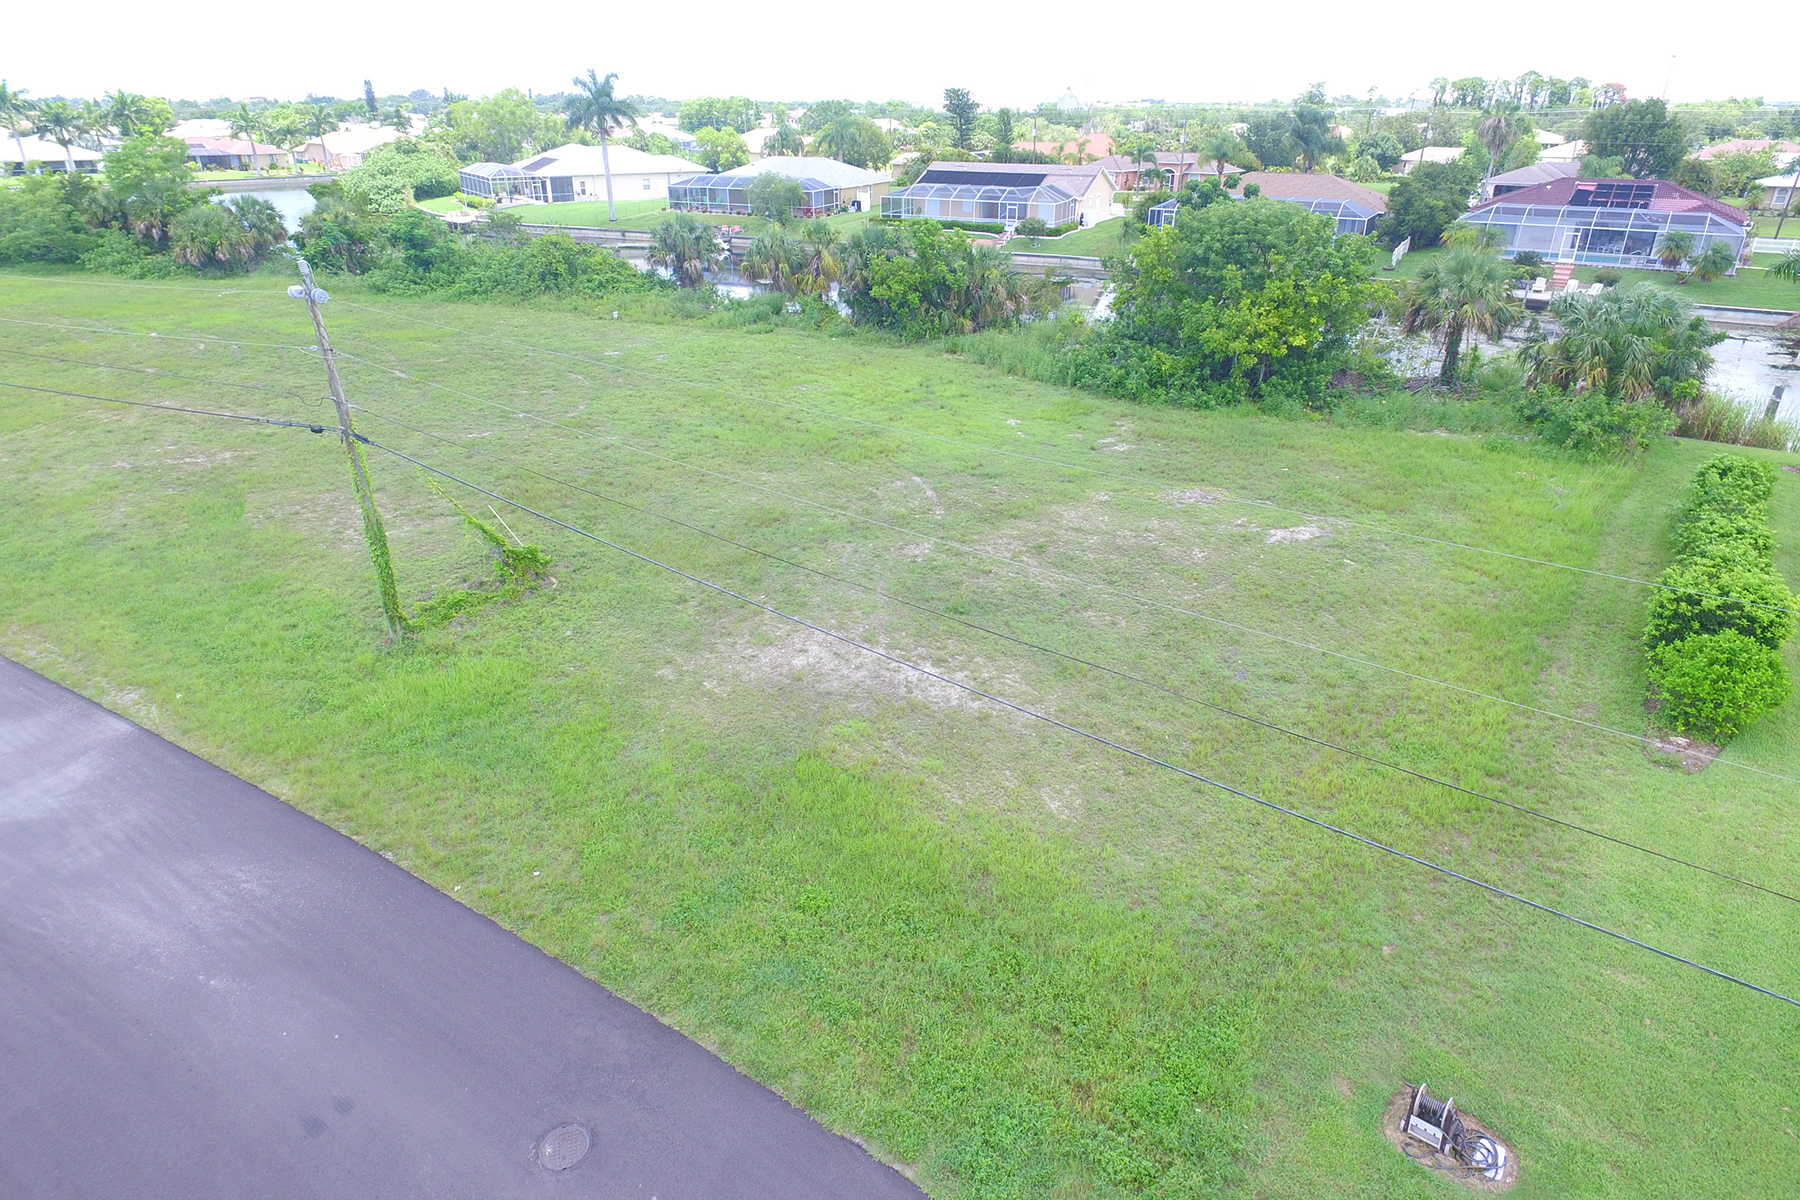 Terreno por un Venta en 2207 4th St , Cape Coral, FL 33909 2207 4th St Cape Coral, Florida 33909 Estados Unidos